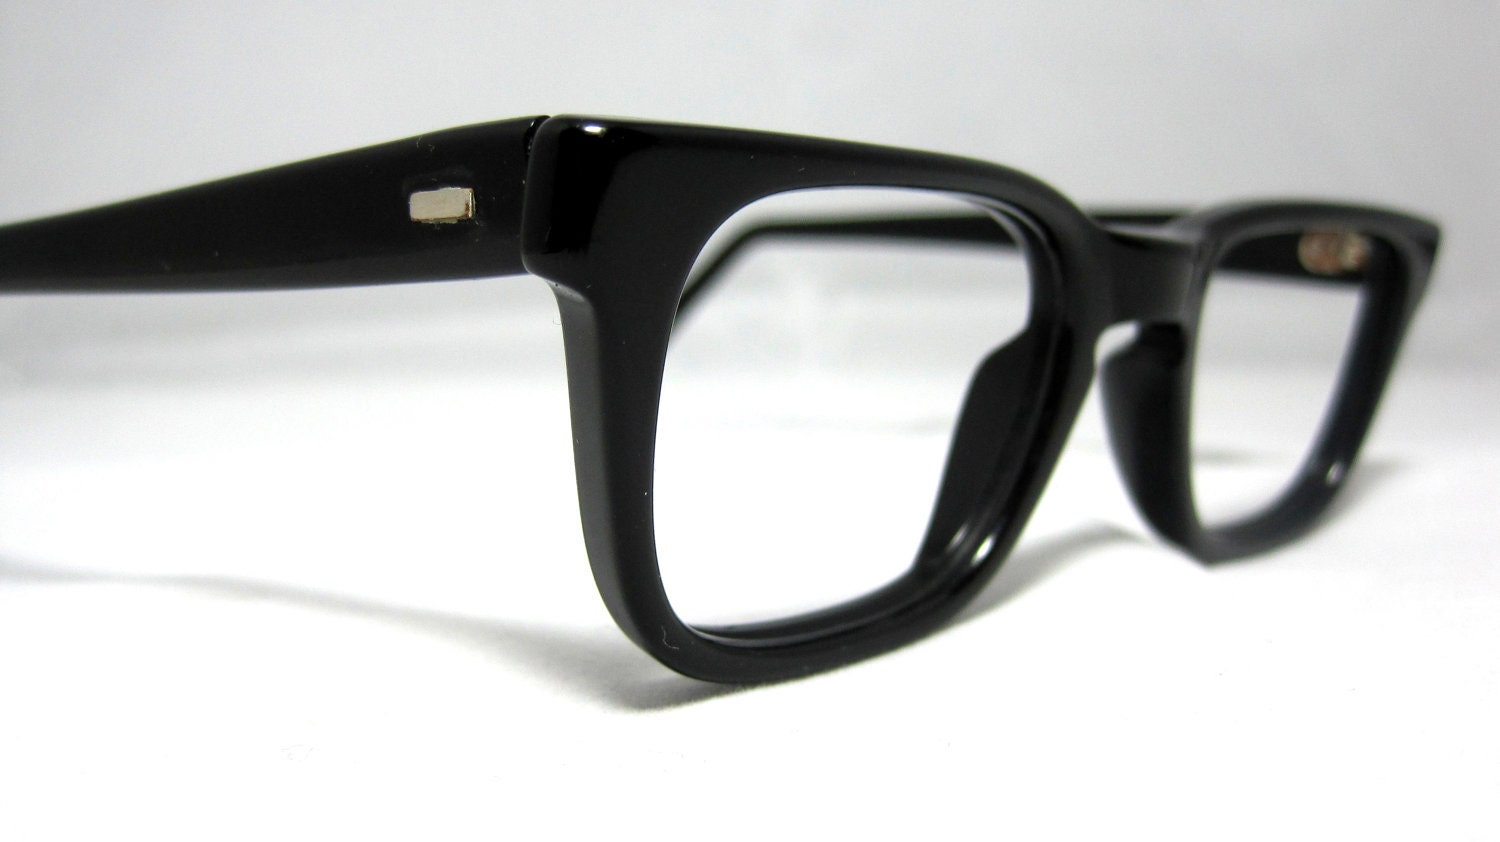 Vintage Black Frame Glasses : Vintage 50s Mens EyeGlasses. Black Horn Rim Mad Men Frames